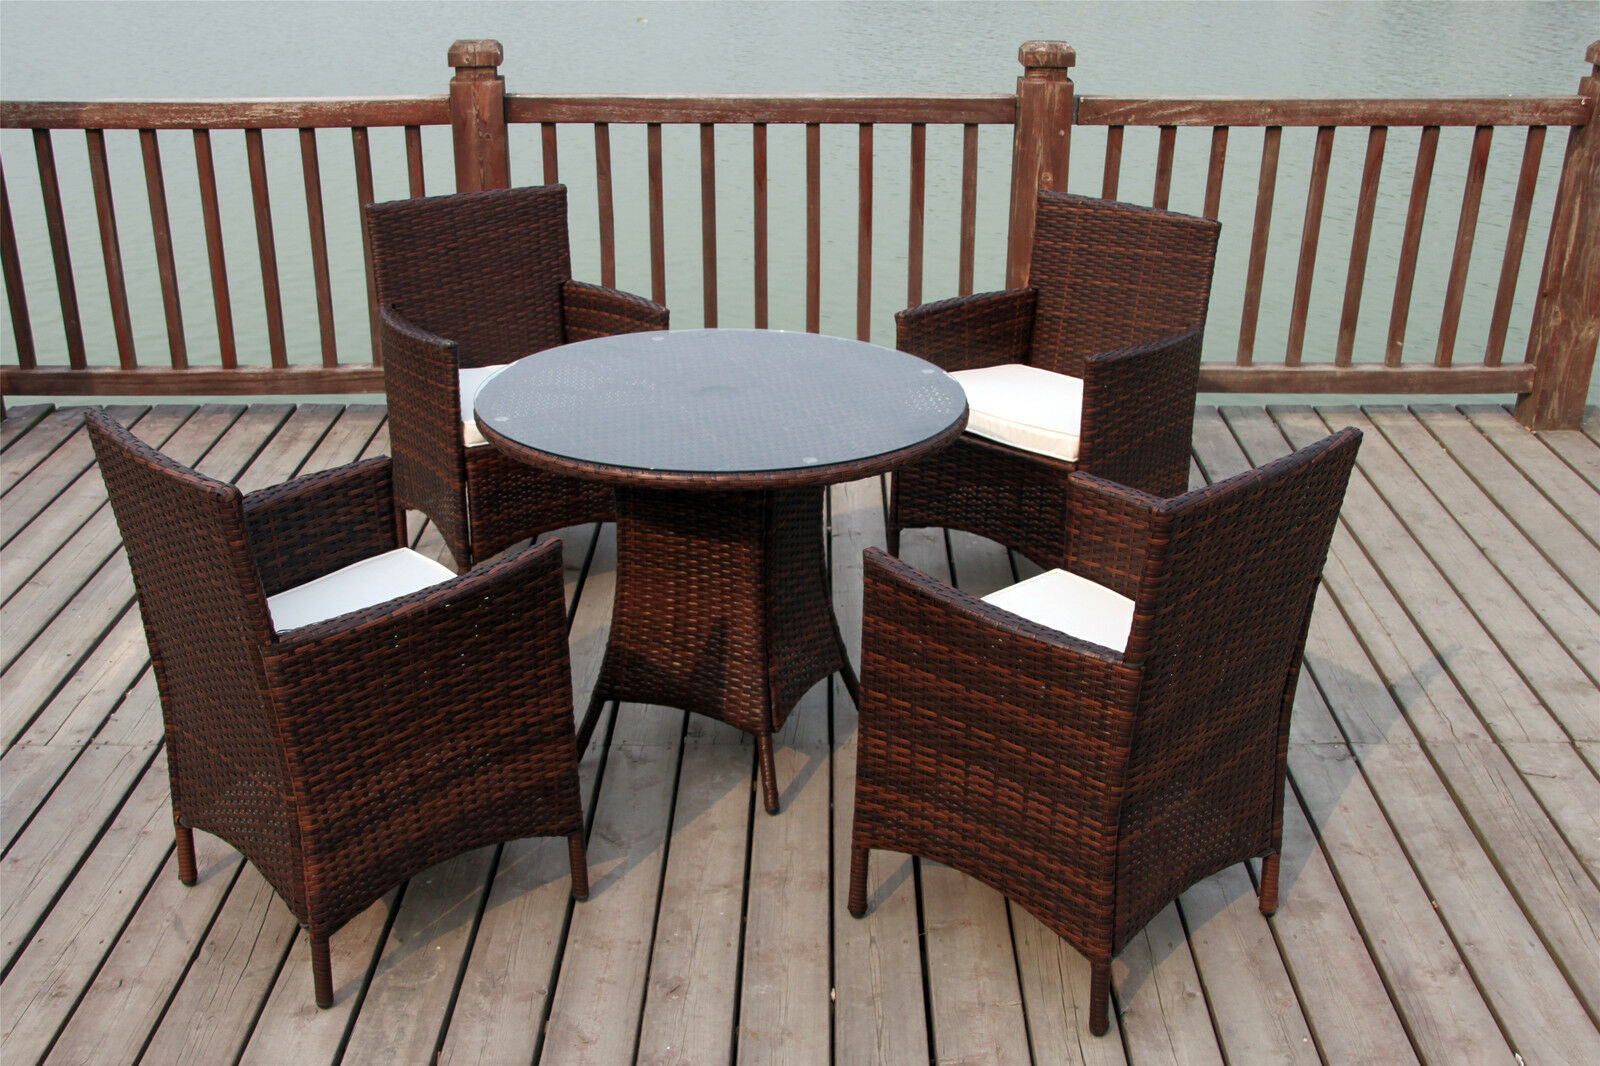 Best ideas about Rattan Dining Set . Save or Pin BISTRO GARDEN RATTAN WICKER OUTDOOR DINING FURNITURE SET Now.